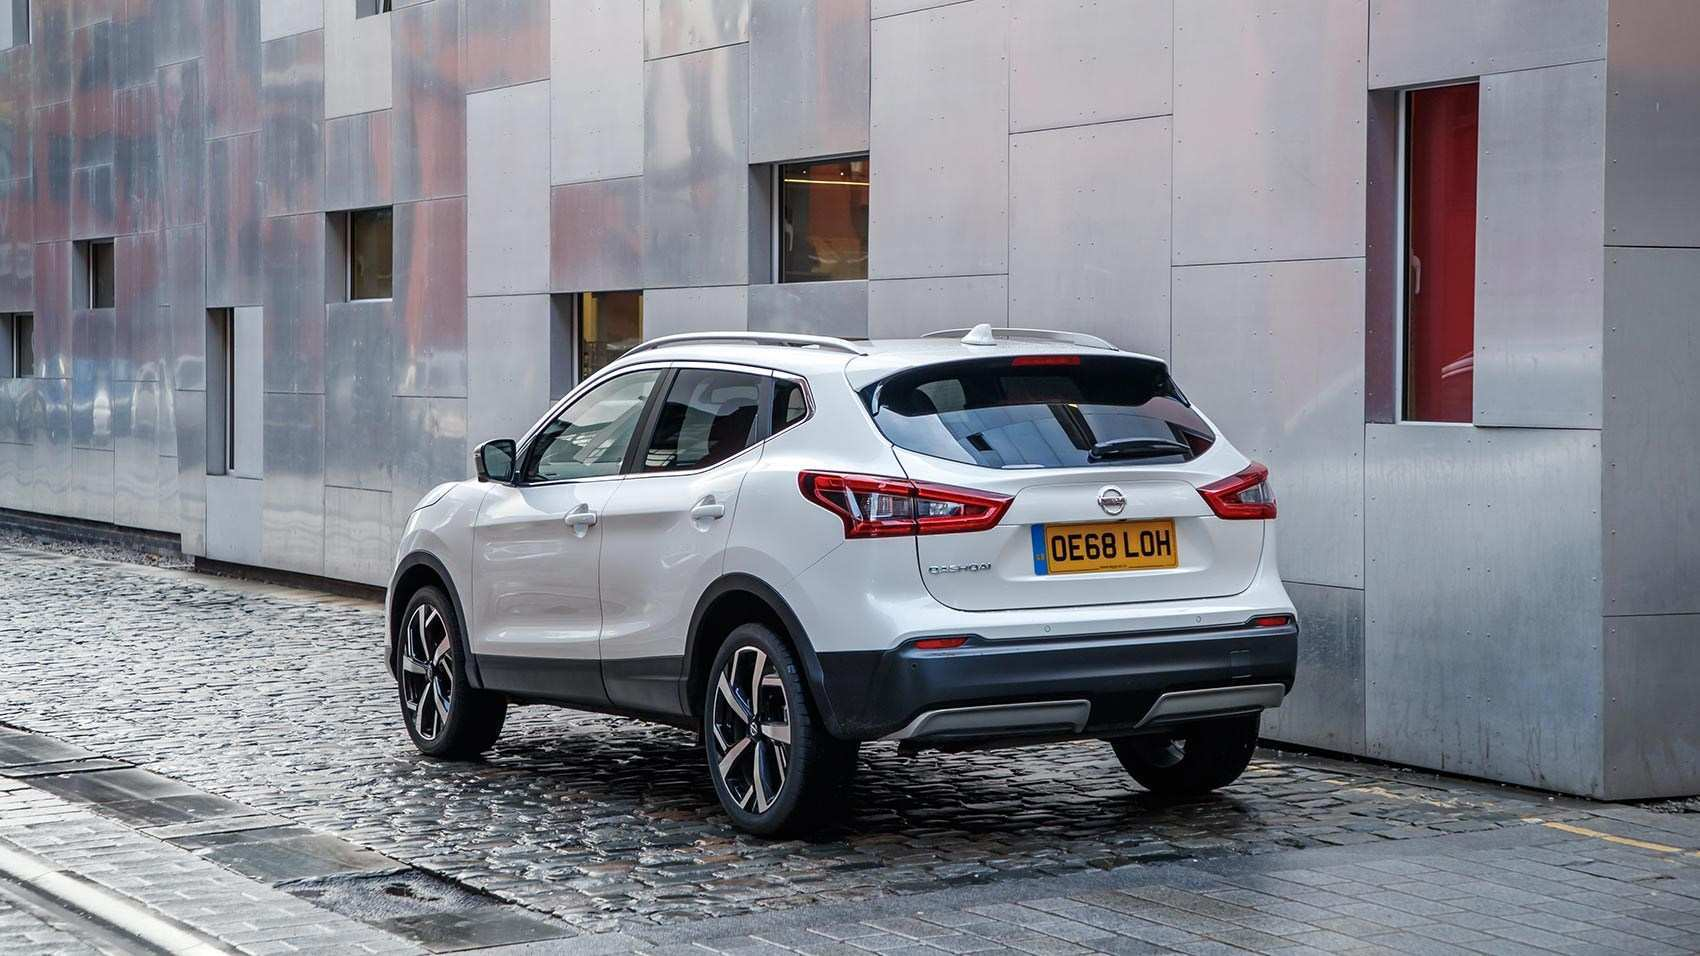 78 All New Nissan Qashqai 2019 Model Pictures